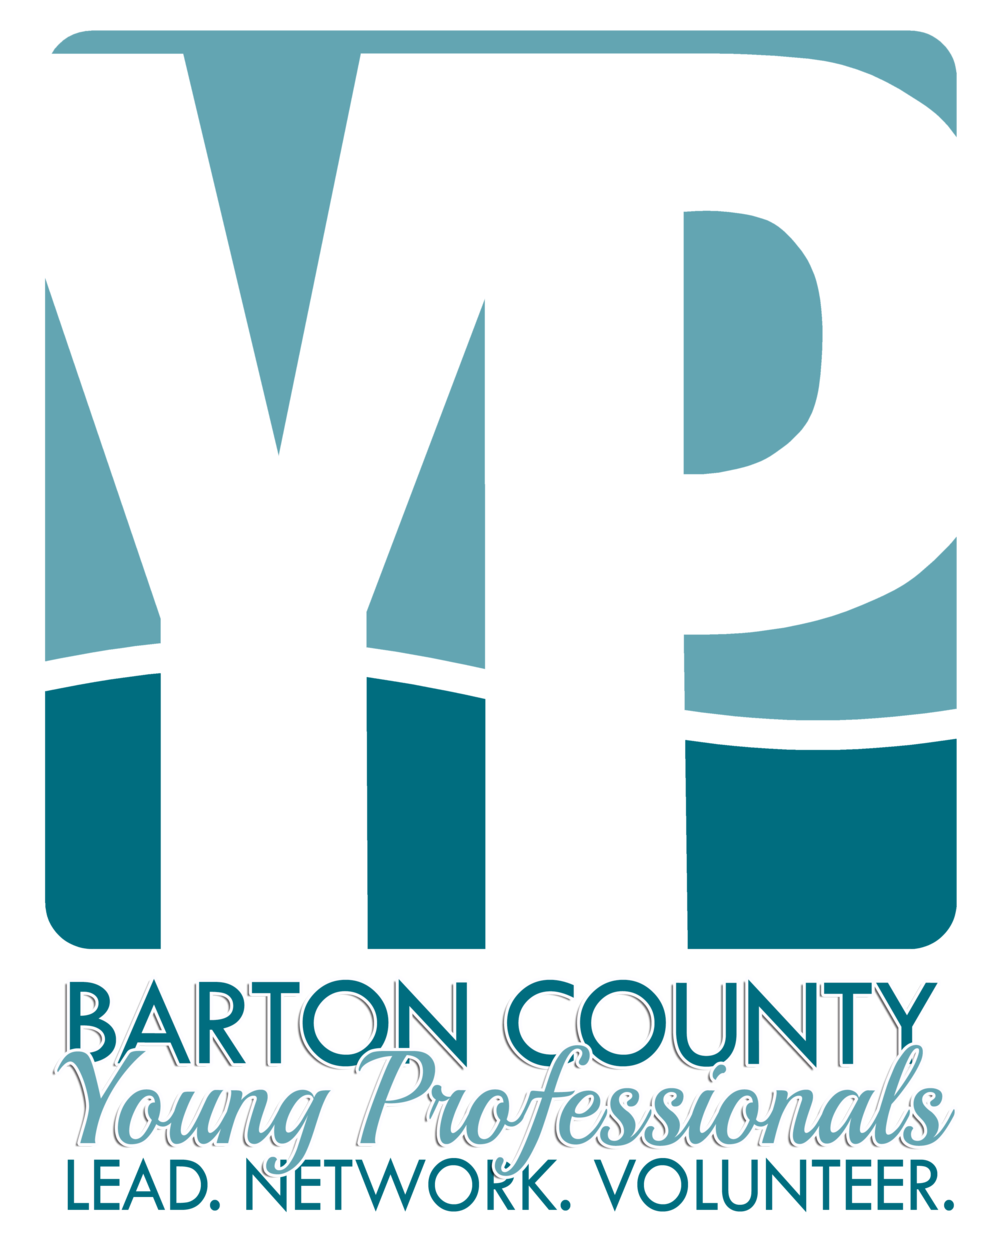 BCYP Logo - New 2015.png